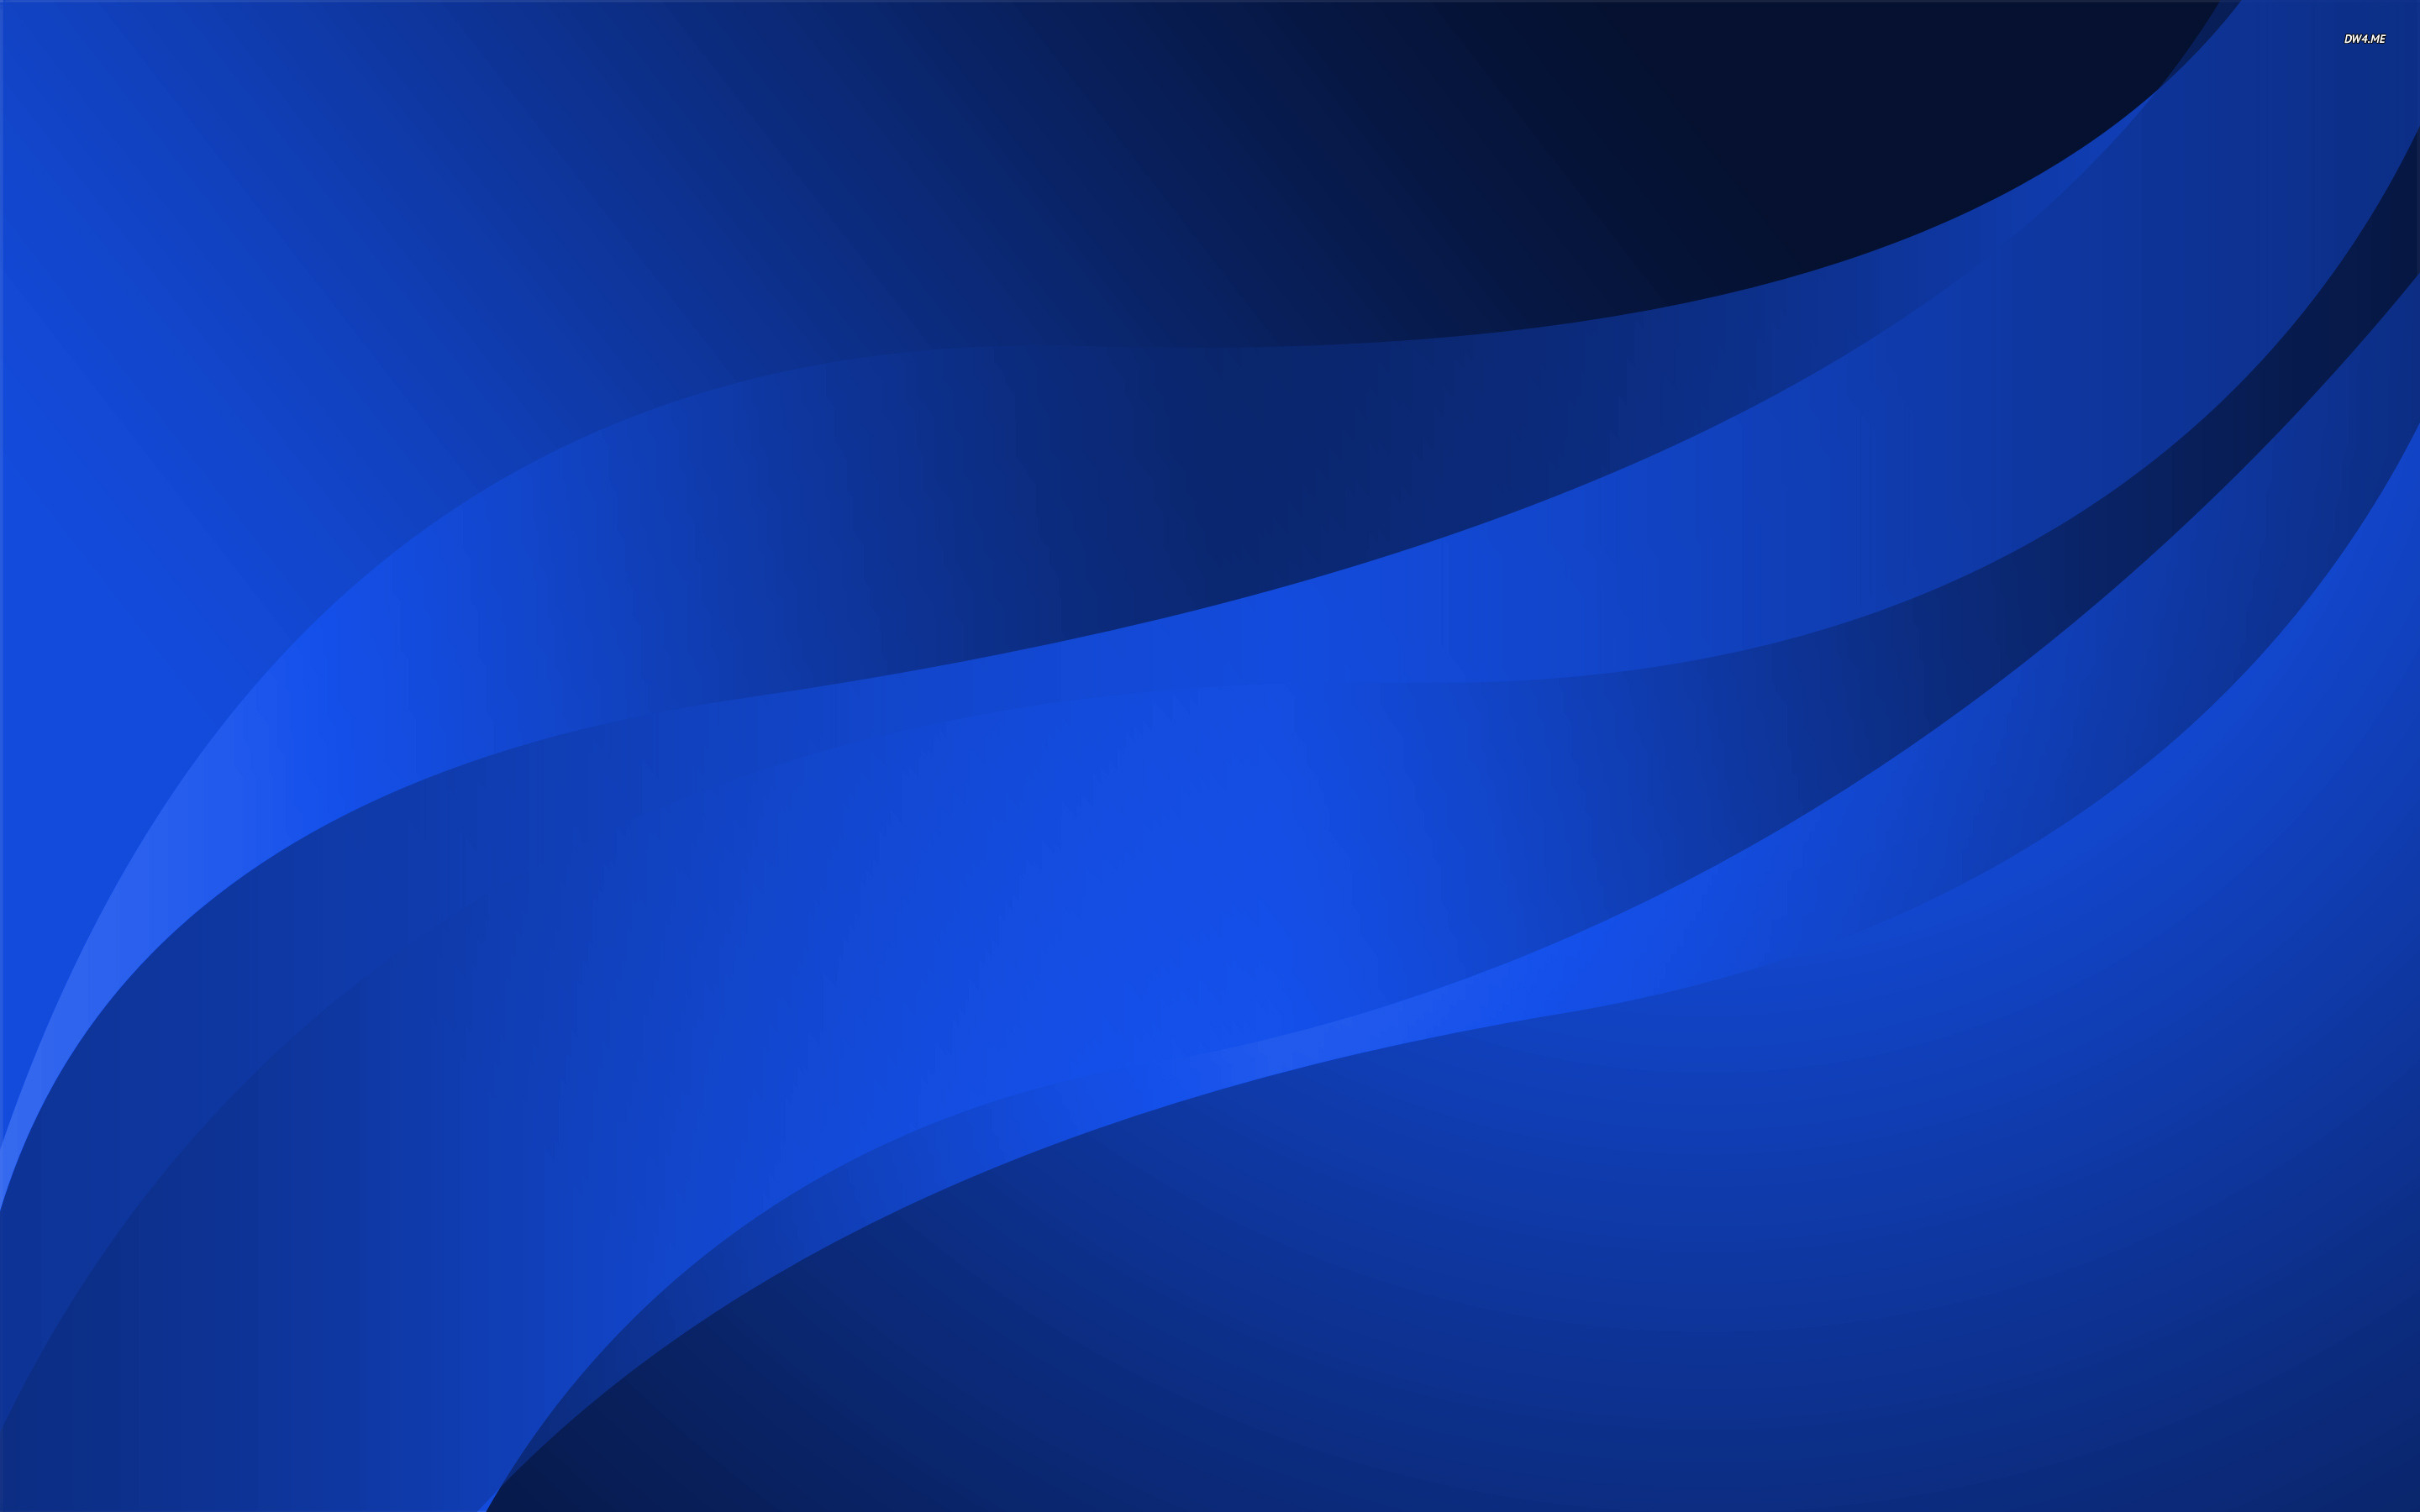 Blue curves wallpaper   Abstract wallpapers   2165 2880x1800